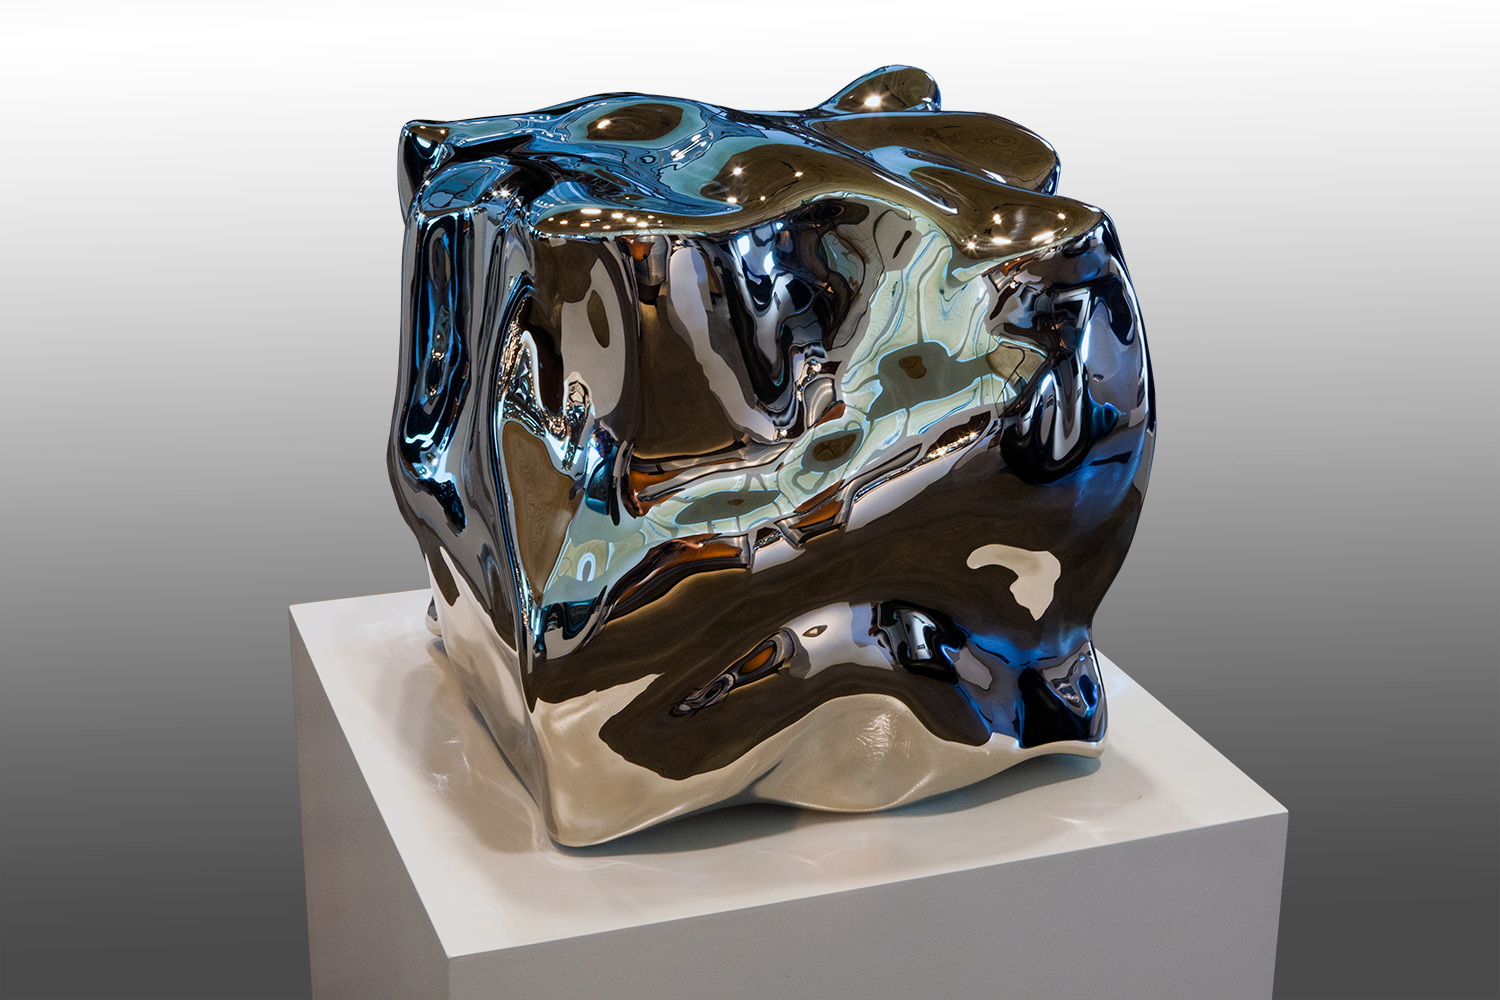 Liquid State (Inhale) 2014 Mirror Polished High Chromium Stainless Steel 22 x 22 x 22 inches | 56 x 56 x 56 cm Edition of 5 + 1 AP